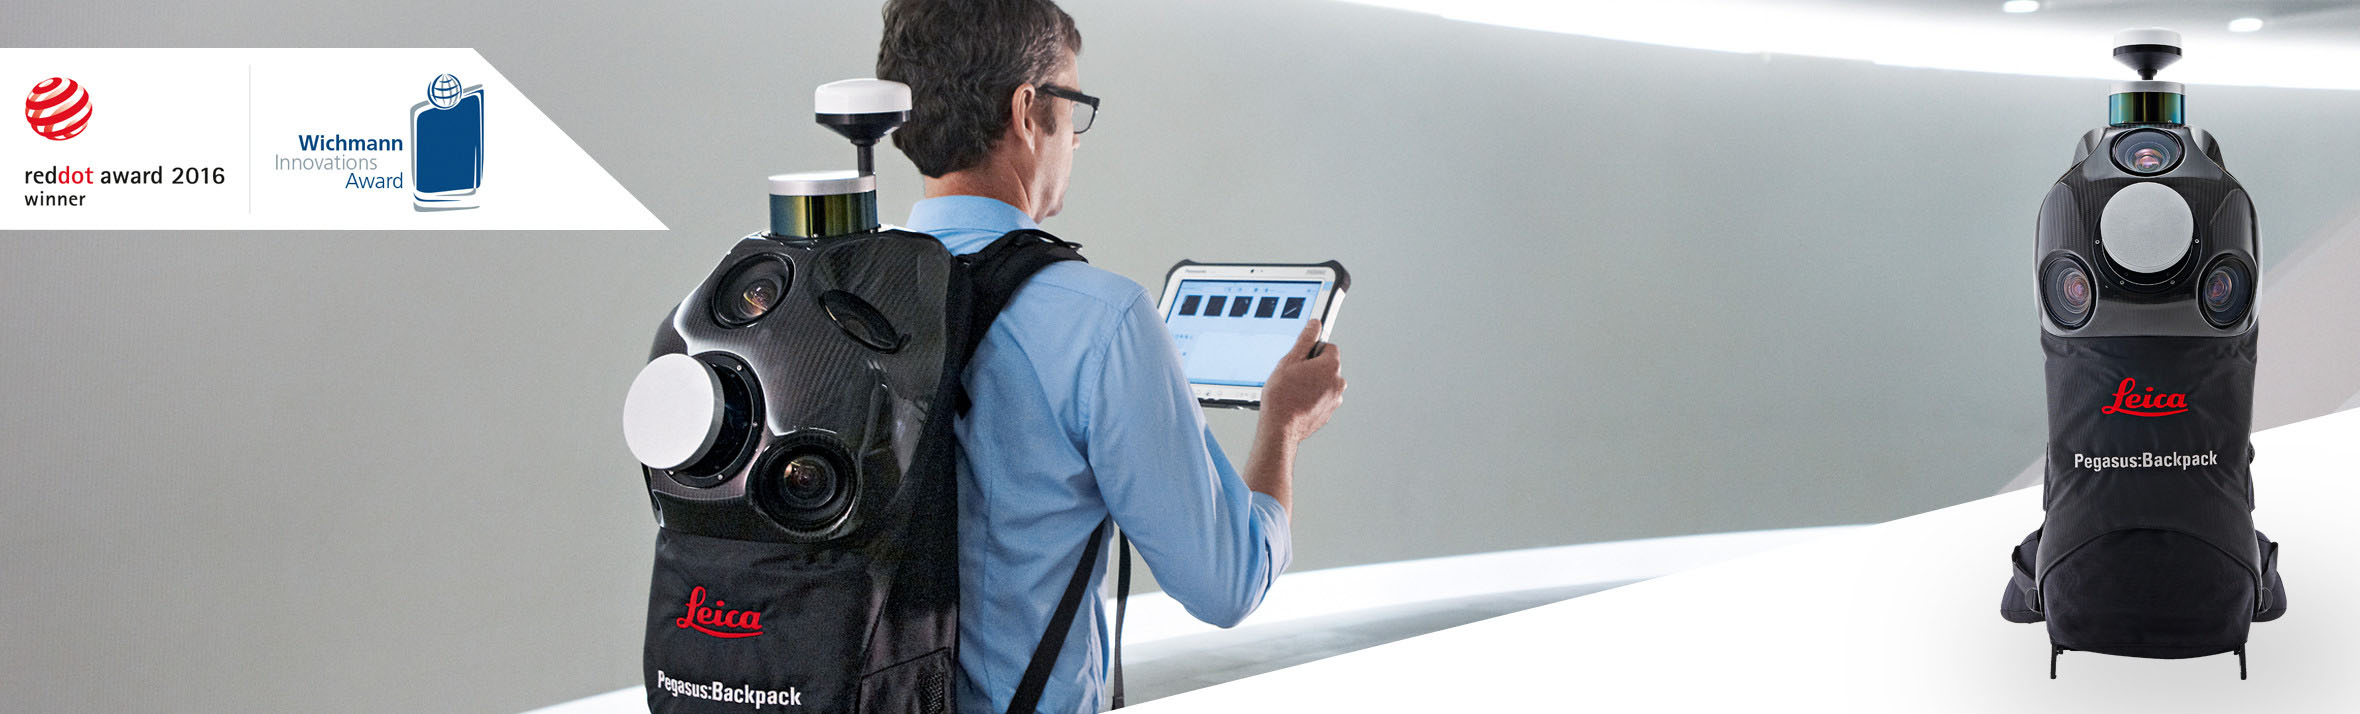 Leica Pegasus:Backpack Wearable Mobile Mapping Solution   Leica